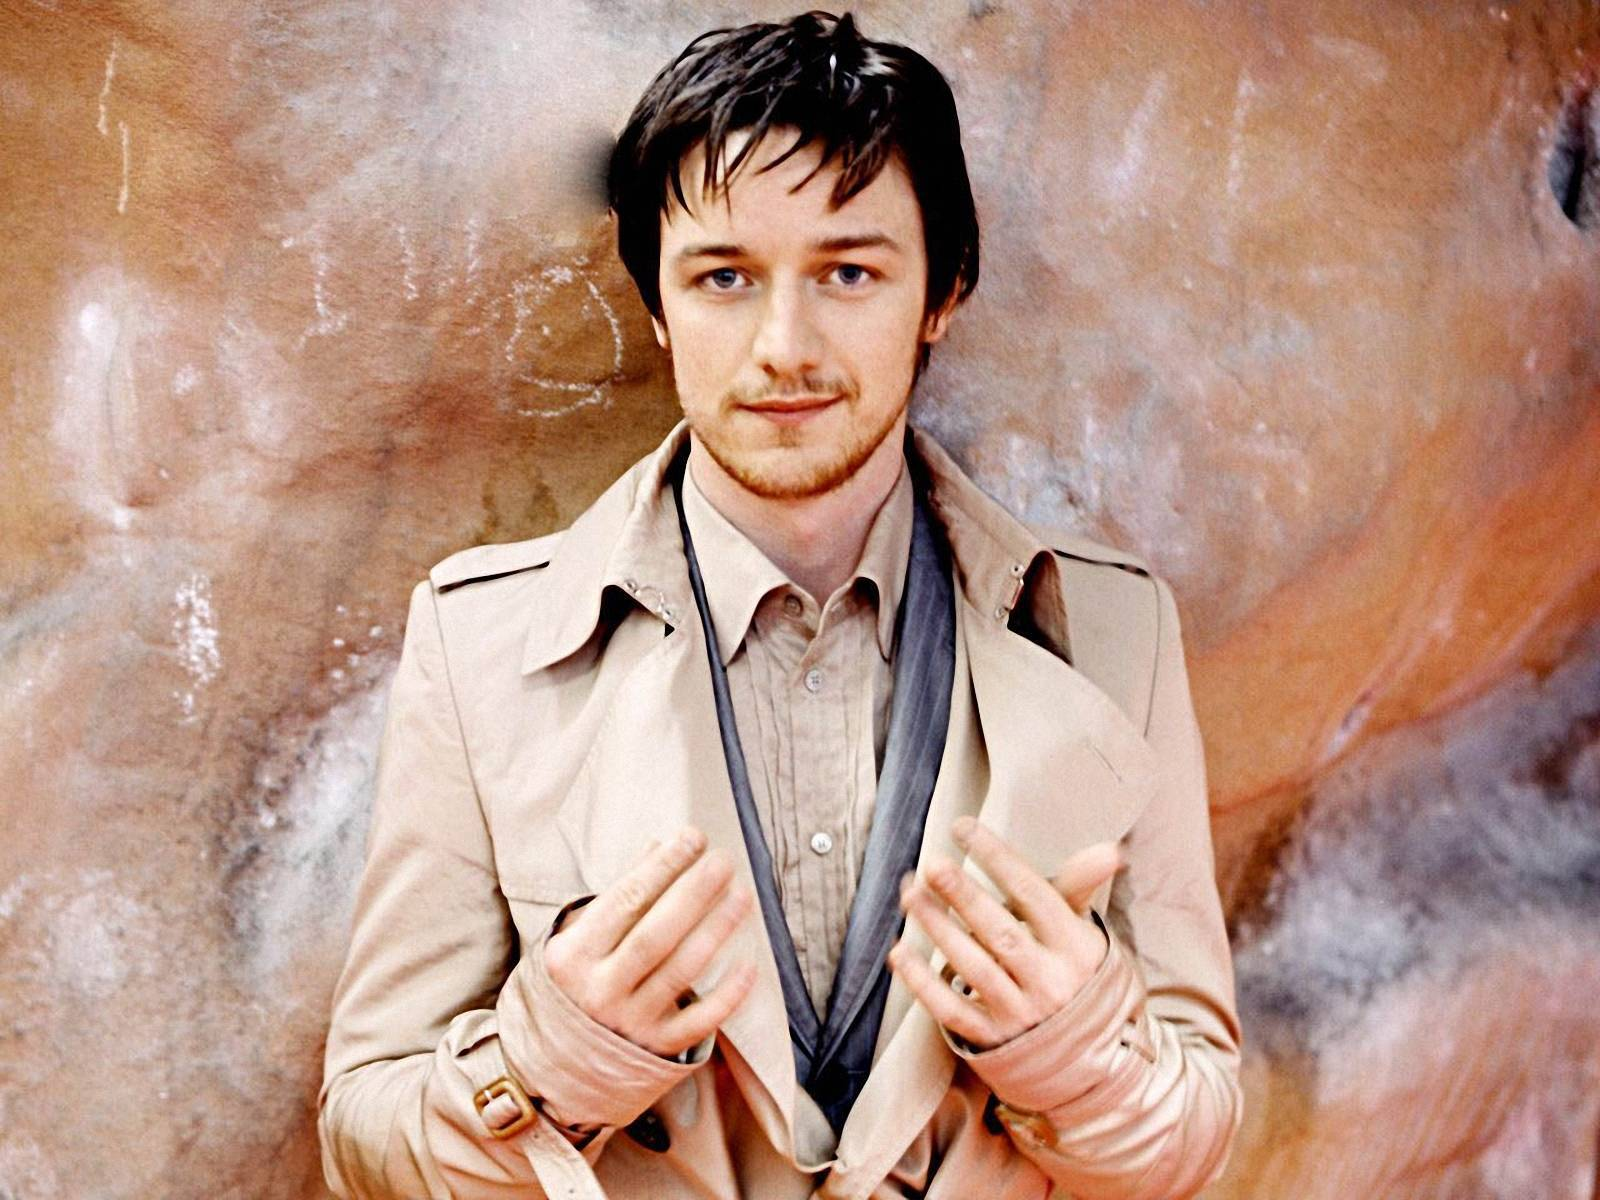 James McAvoy Wallpaper For Laptop